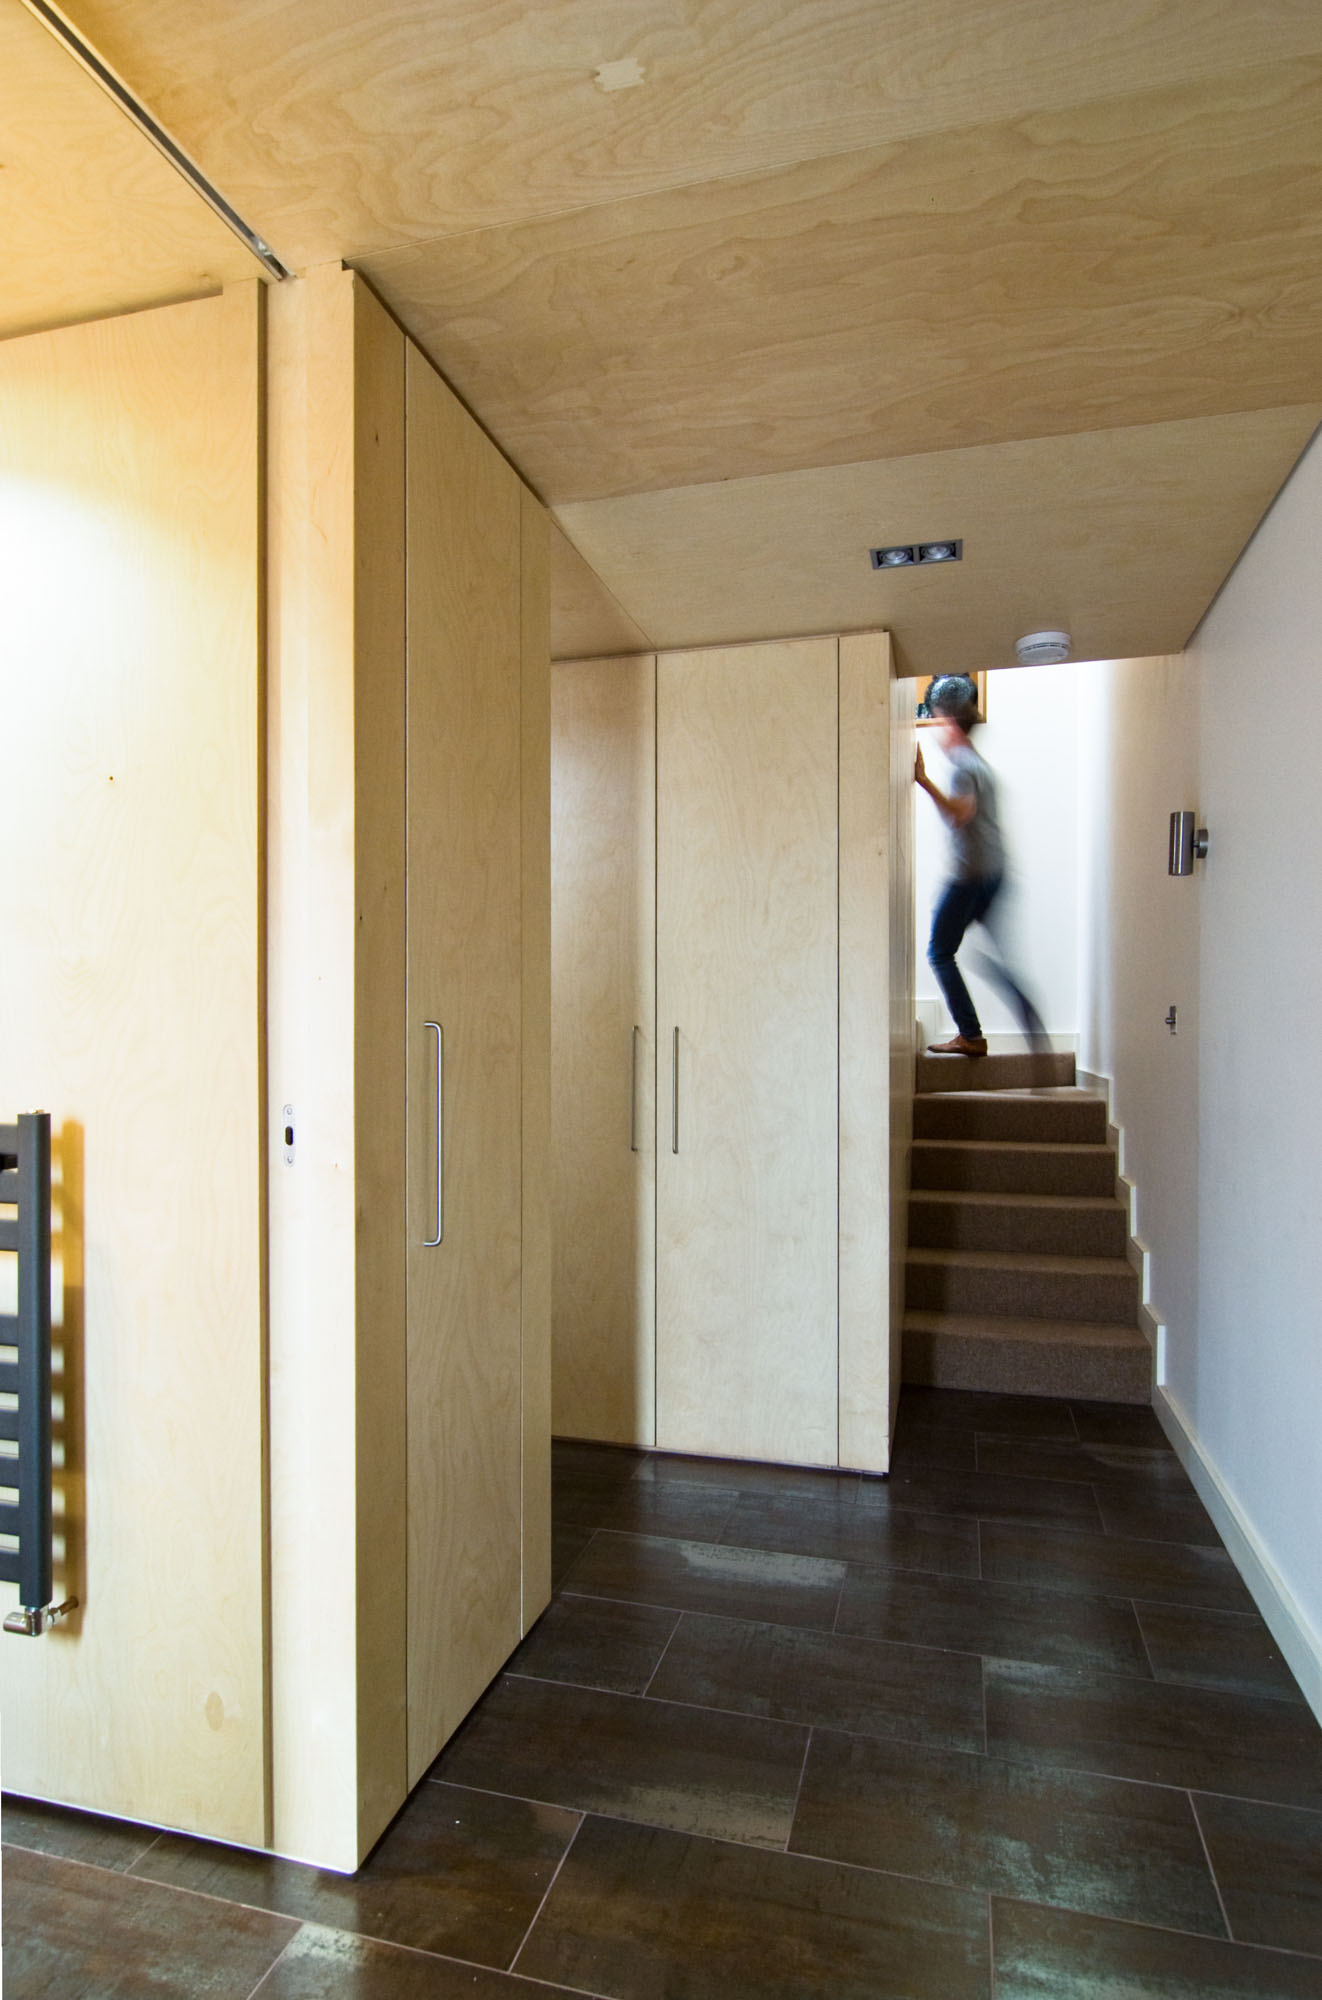 Plywood ceiling and storage within the Mews property.